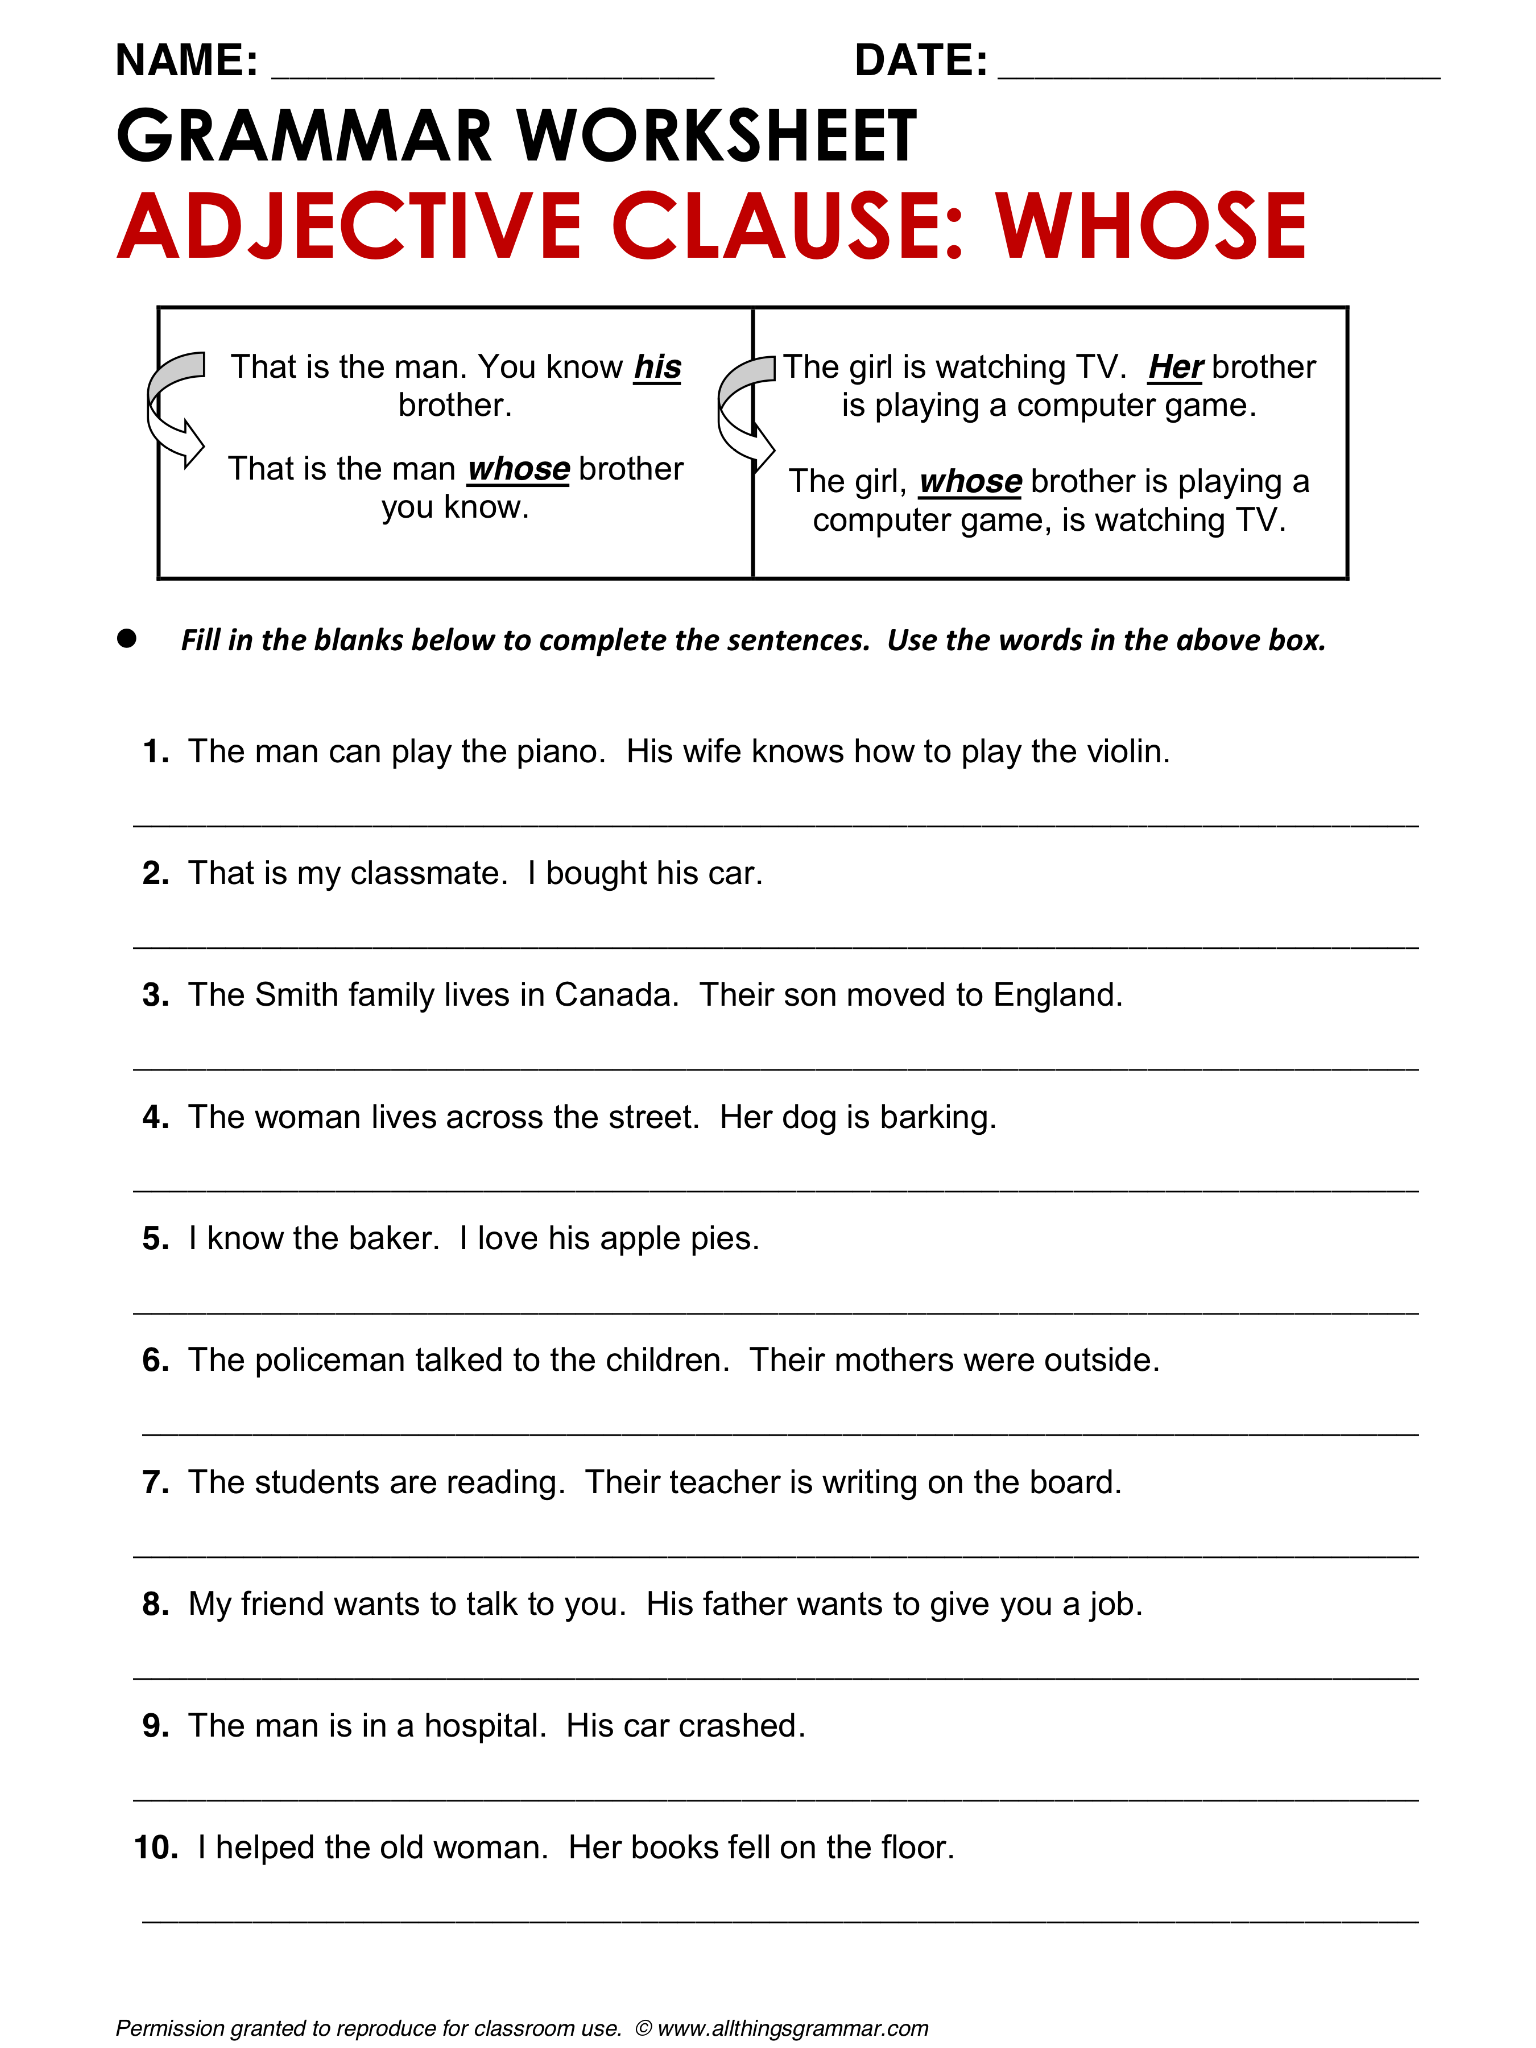 Worksheet Adjective Clauses Worksheet Grass Fedjp